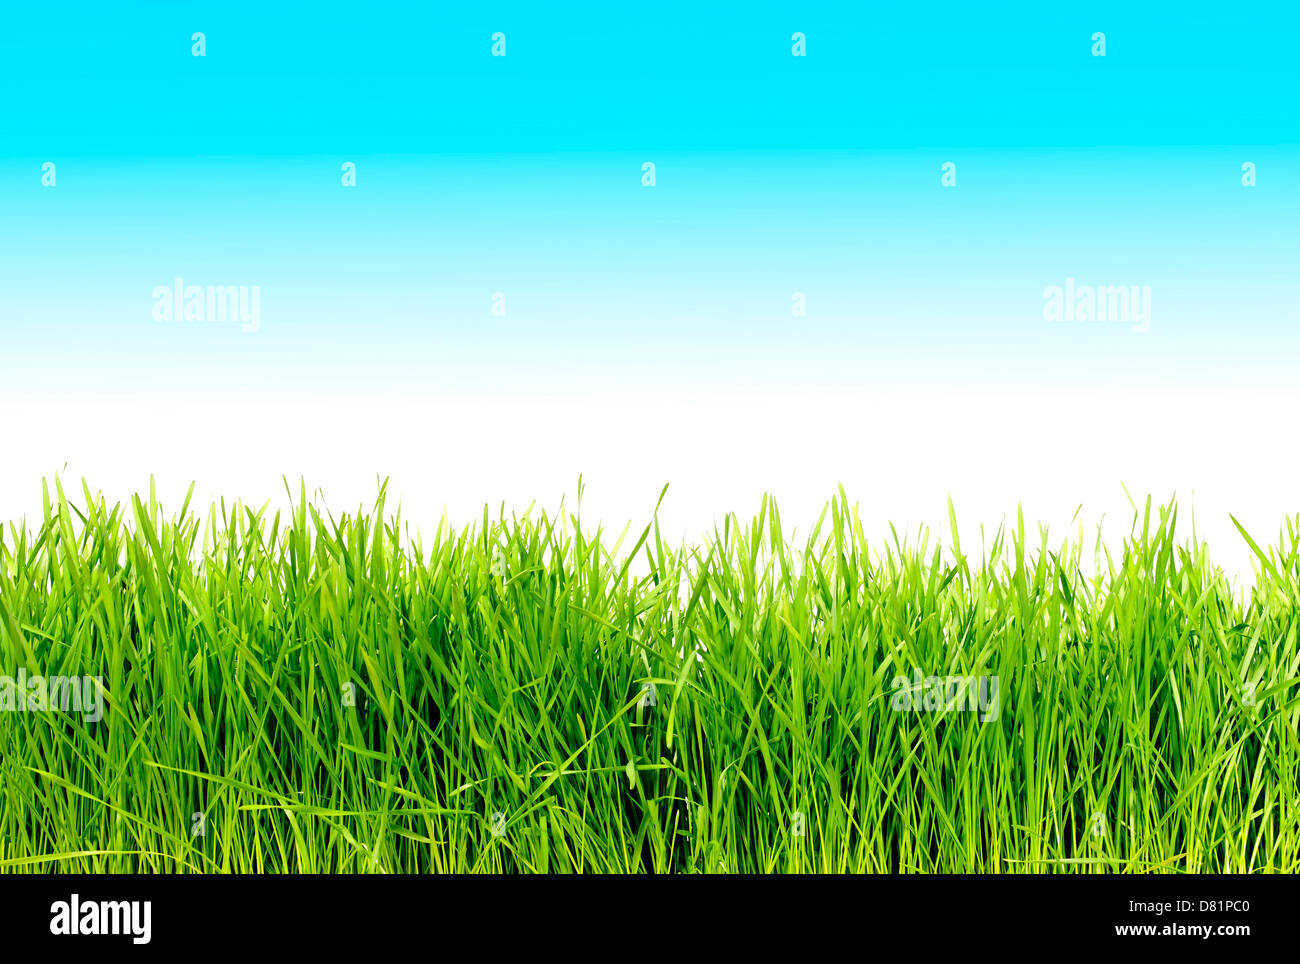 long blades of grass cut out onto a fading blue background - Stock Image